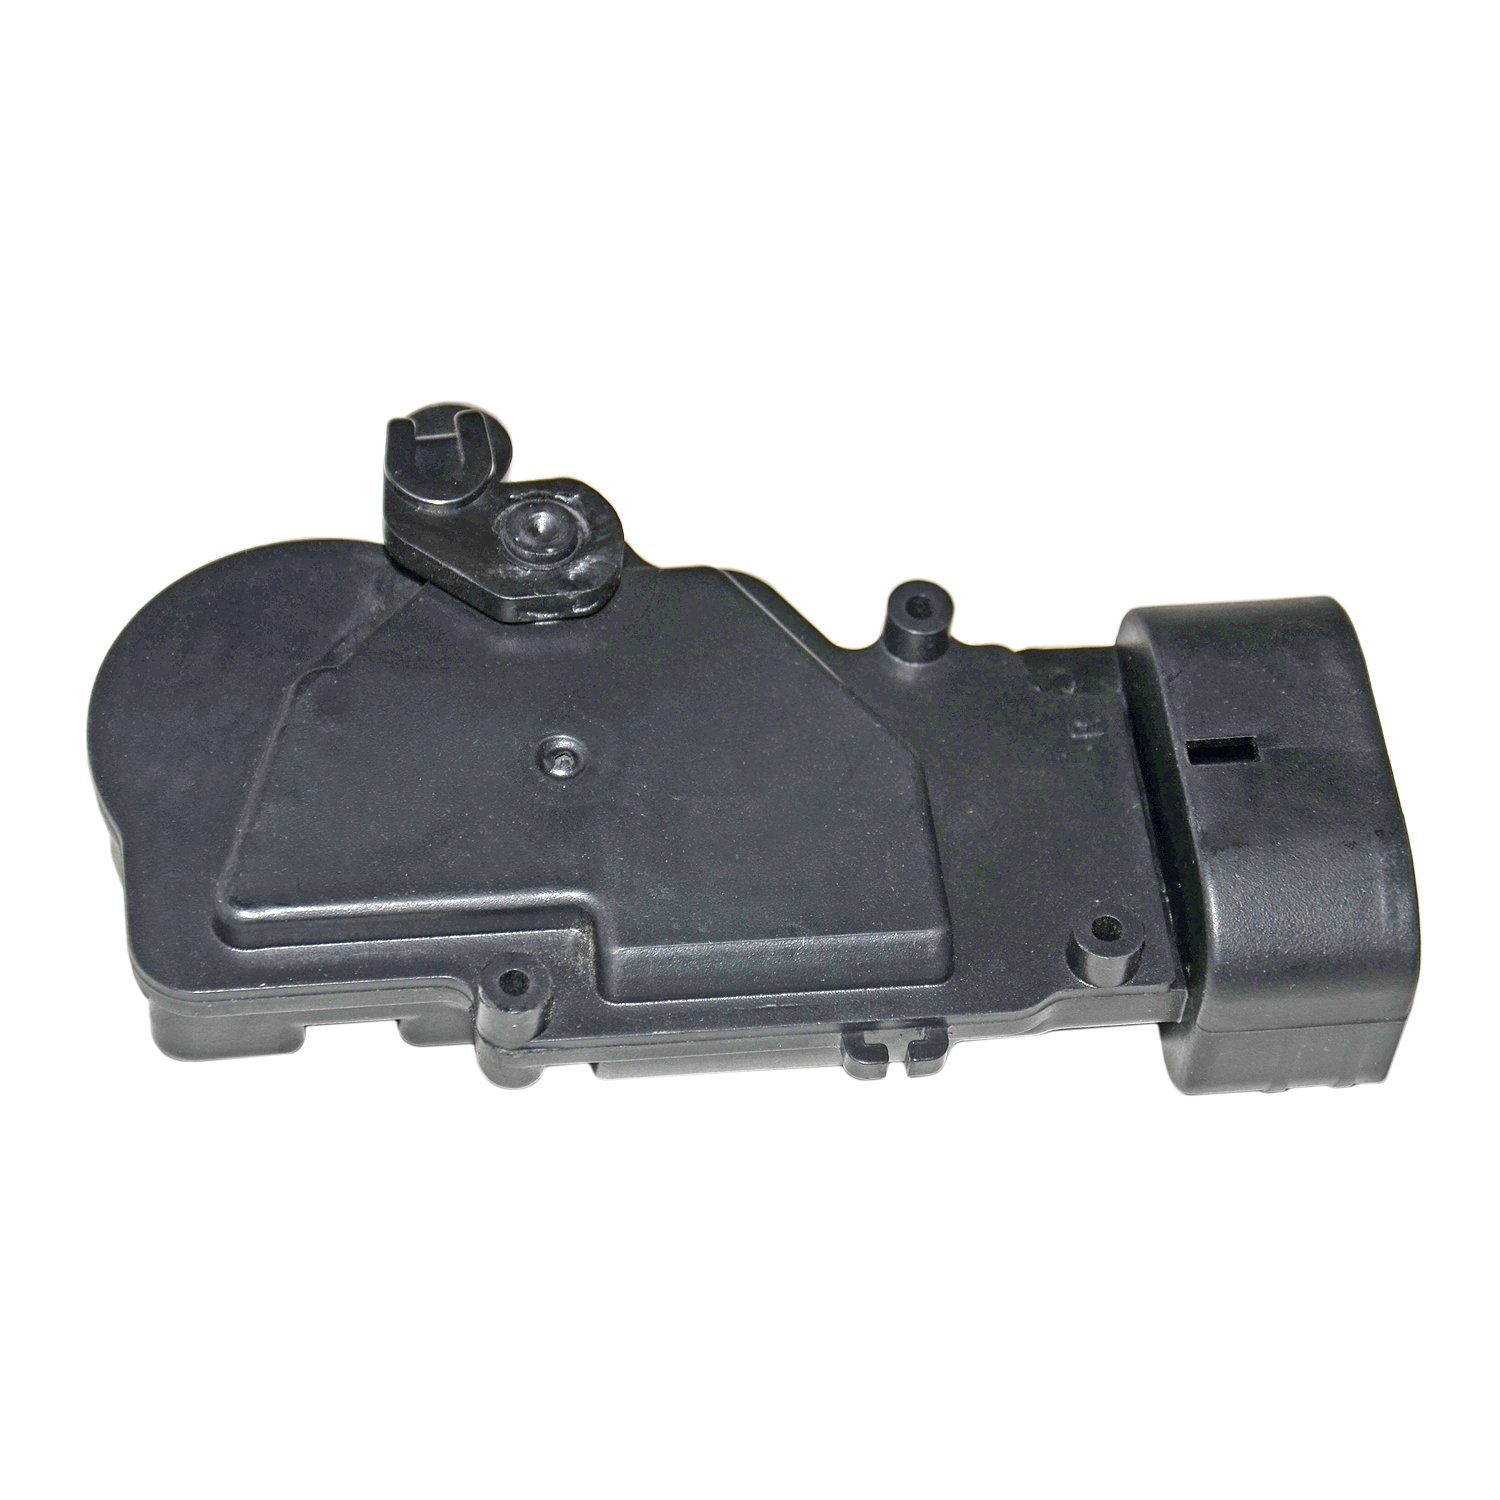 Rear Door Lock Actuator 69150-0C010 Compatible For Toyota Sequoia 01-07 Limited SR5 V8 4.7L AKWH